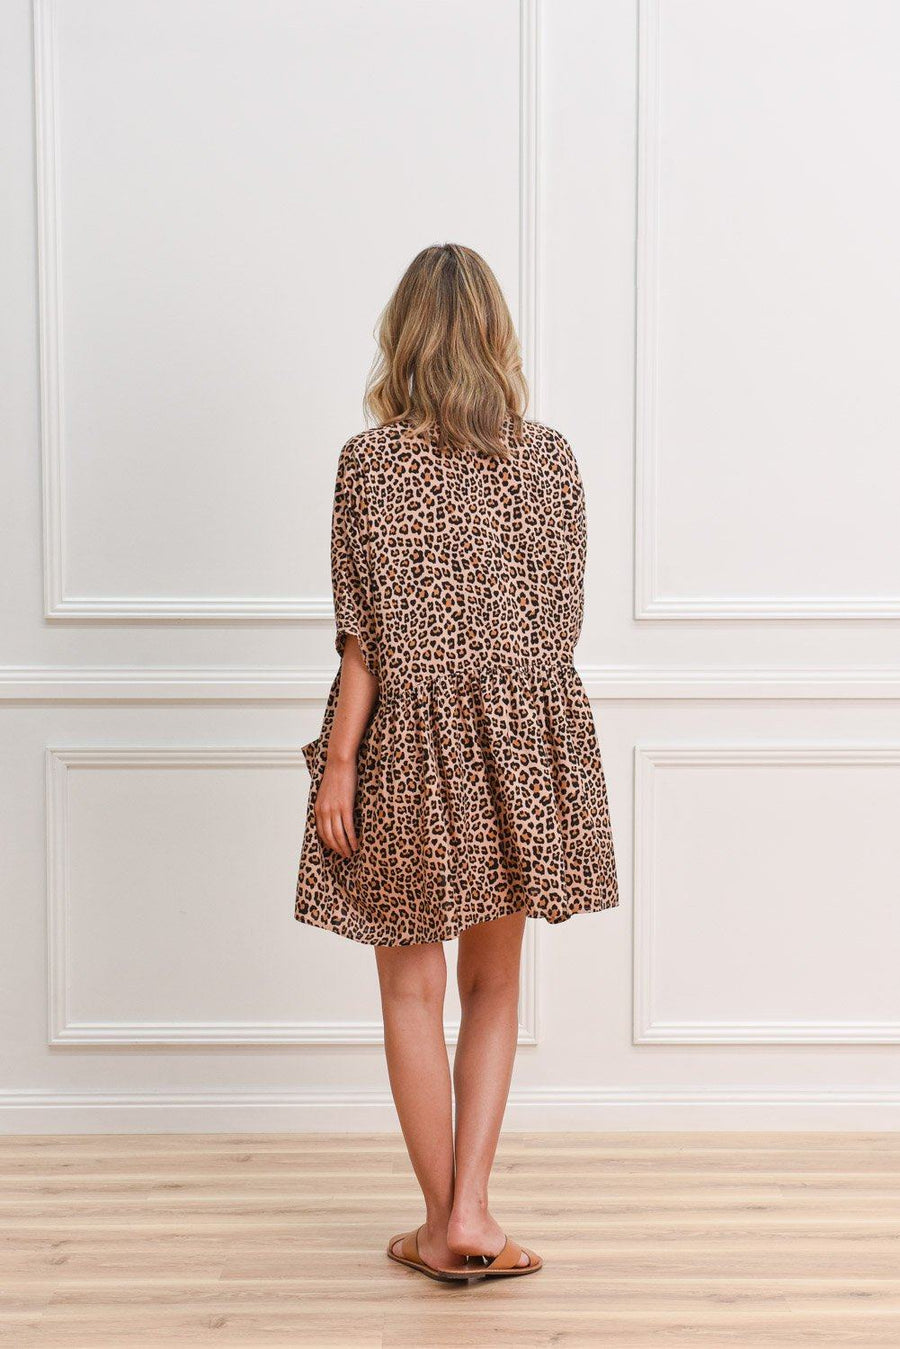 Marlo Tunic | Leopard Dress Gray.Label